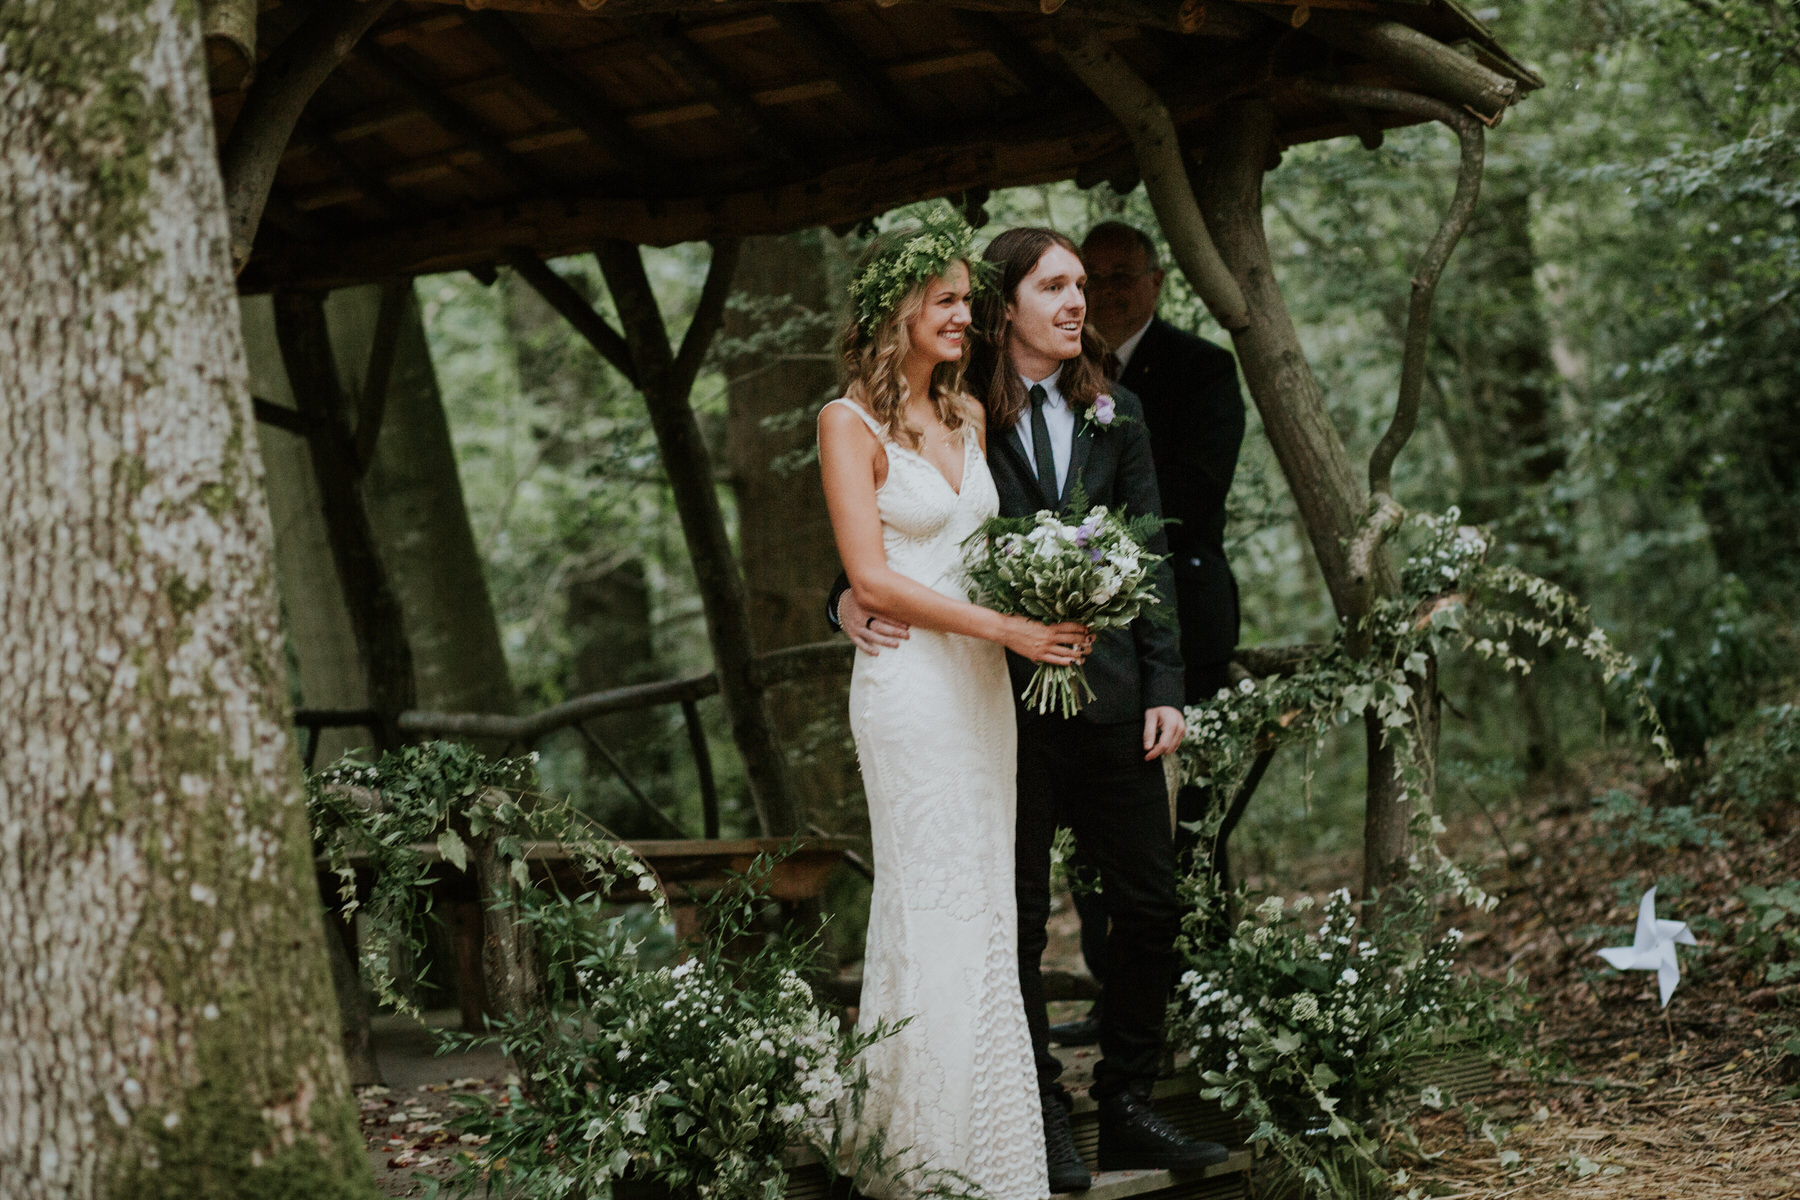 42 Kent groom bride Paper Mill woodland wedding.jpg